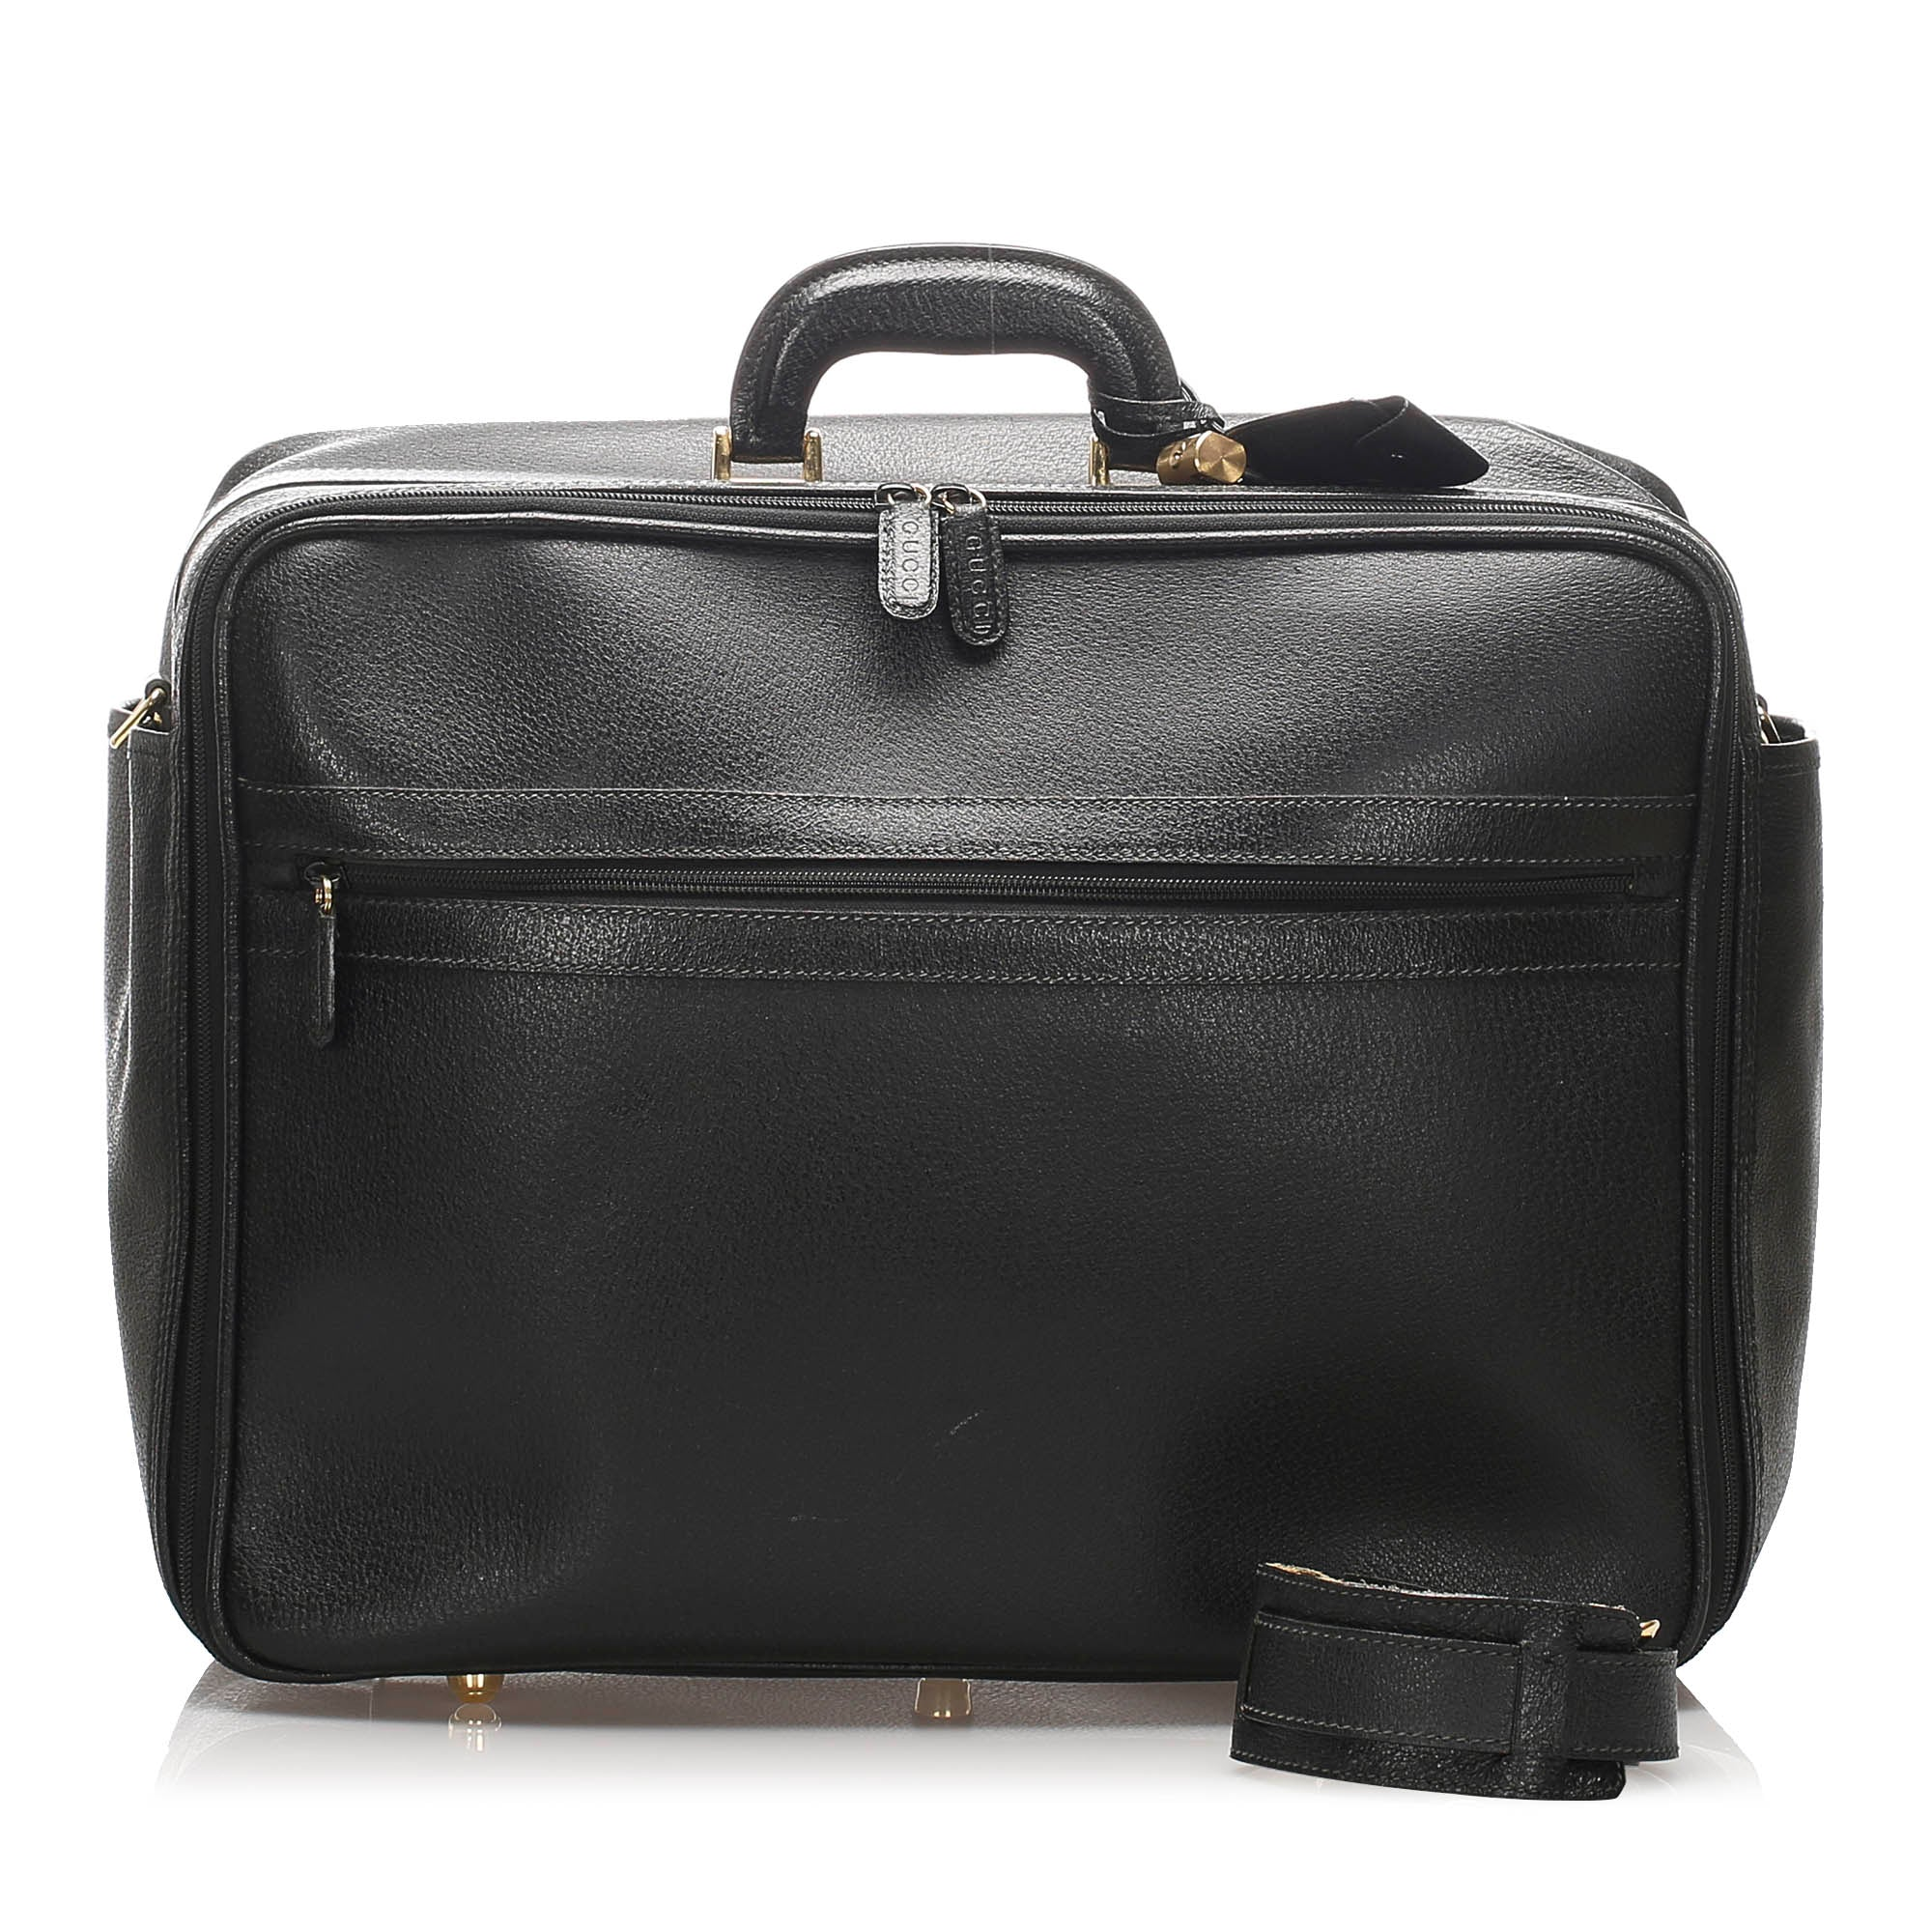 Gucci Black Leather Travel Bag